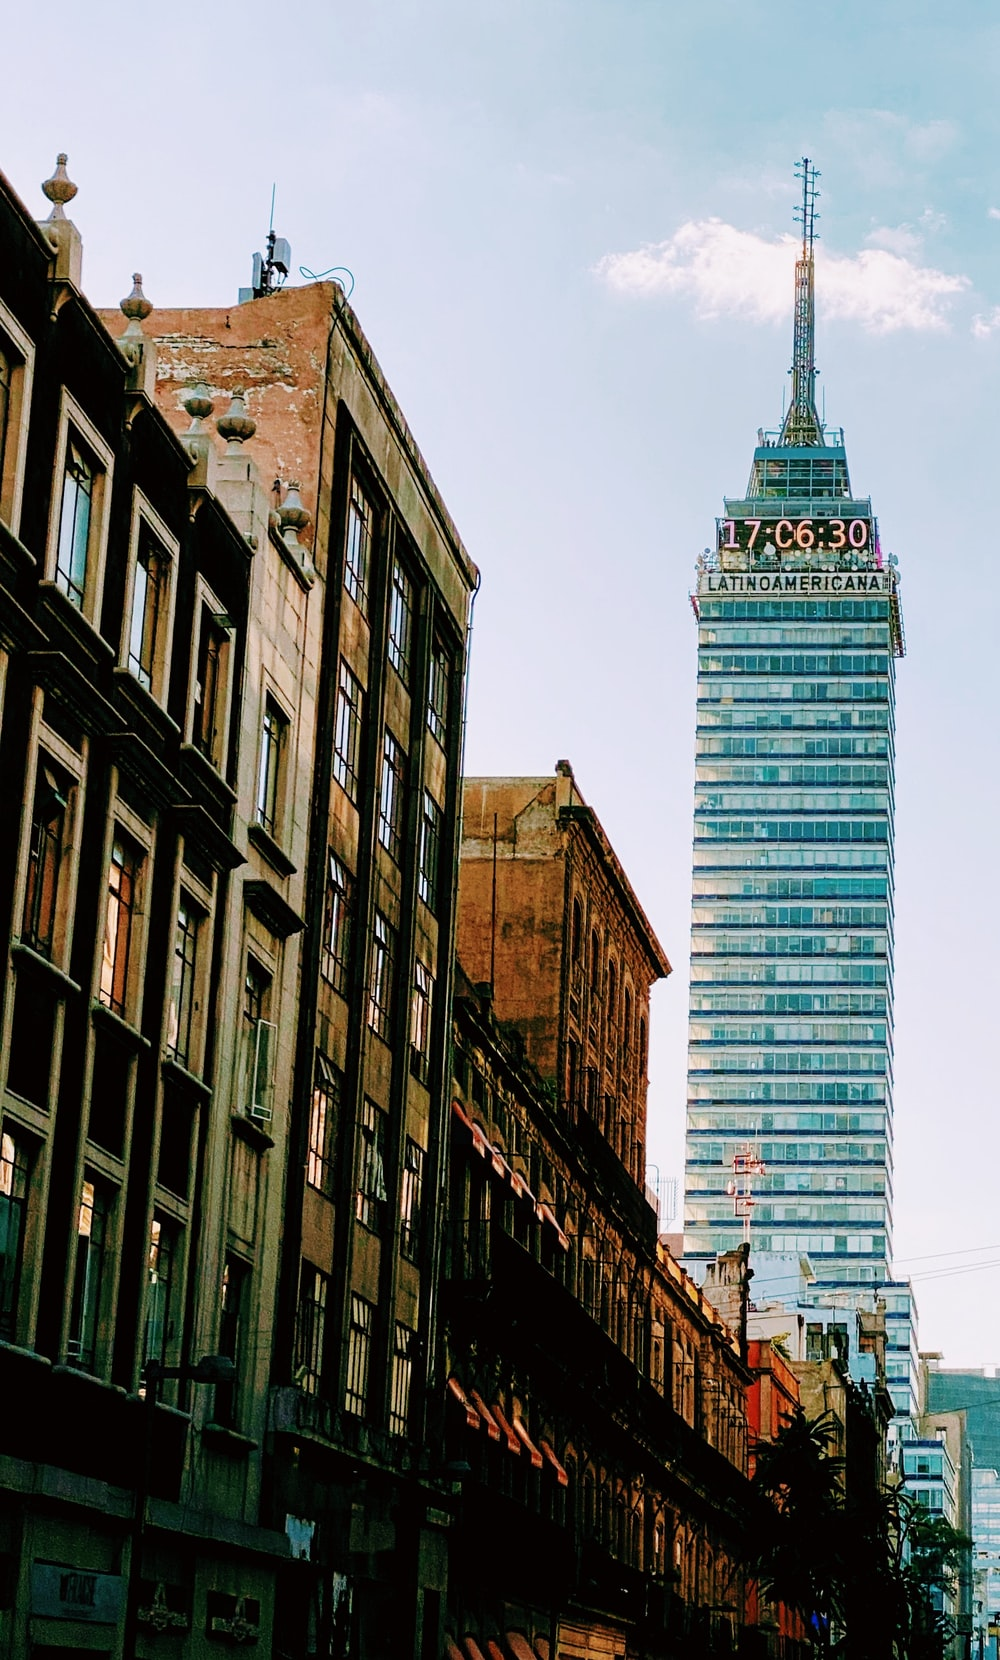 green and white tower building